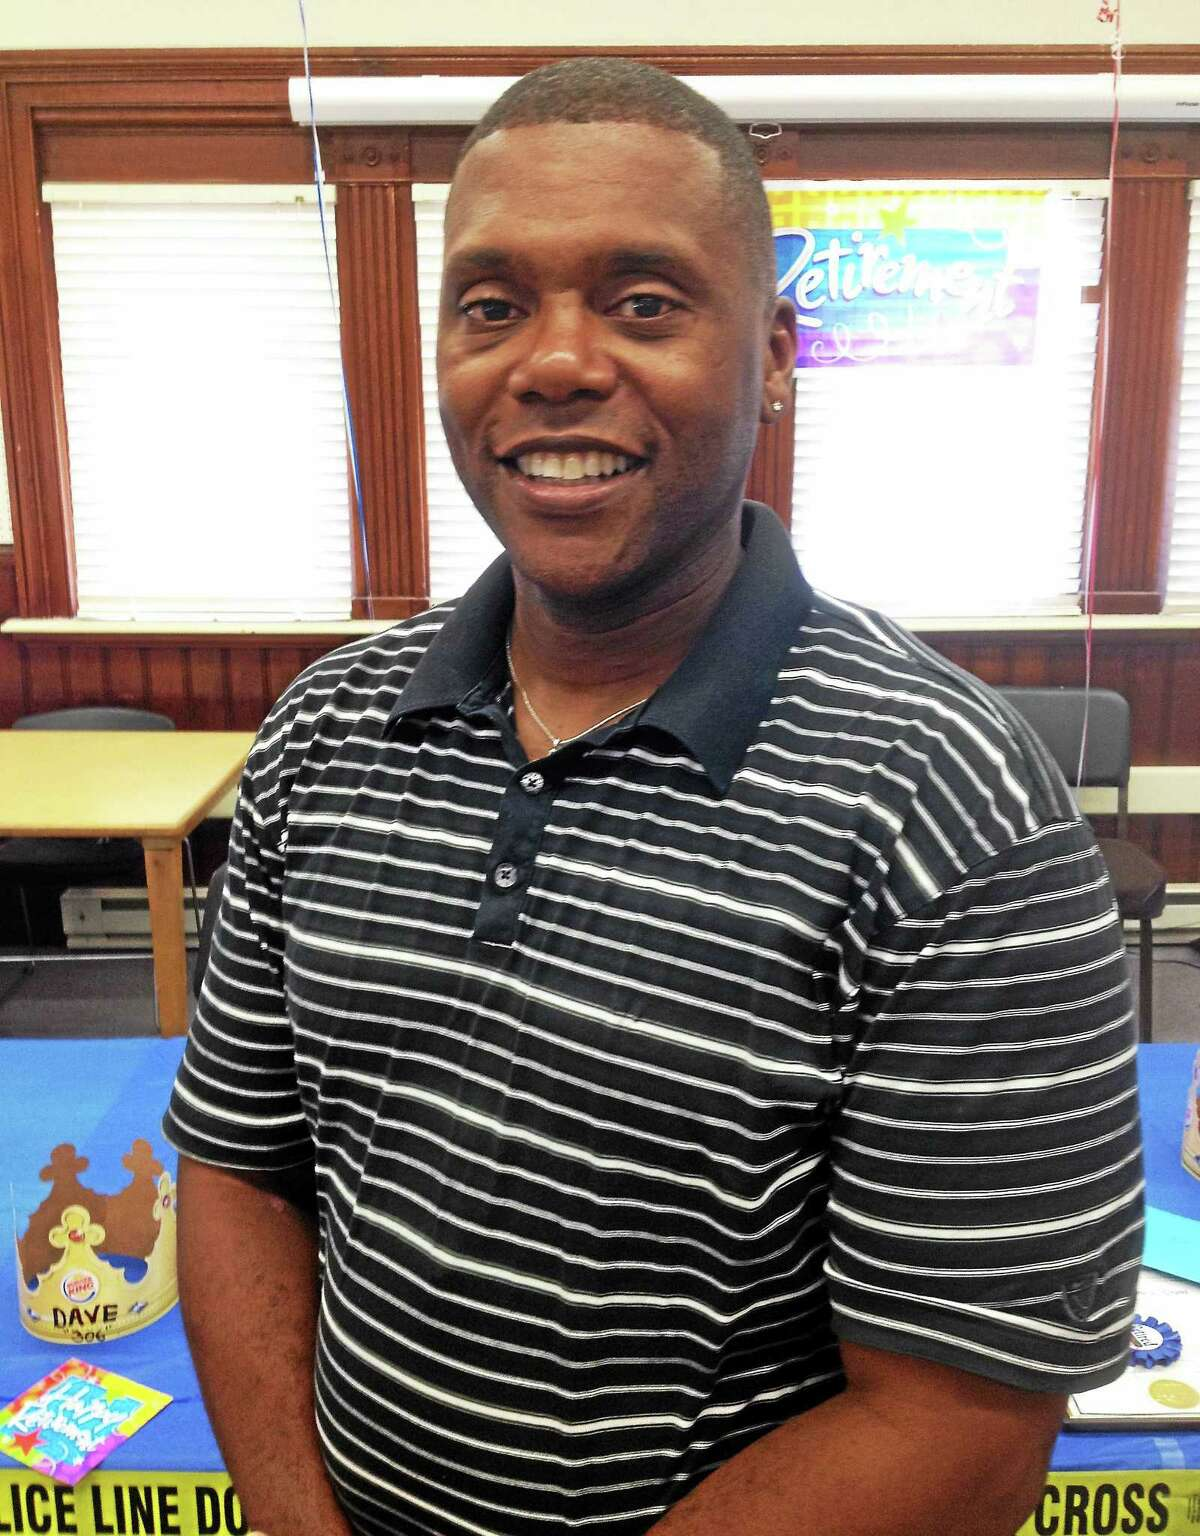 Police officer Eric Grant, who celebrated his retirement along with Bond last week, is moving on to become a physical education instructor at the Valley View School in Portland.